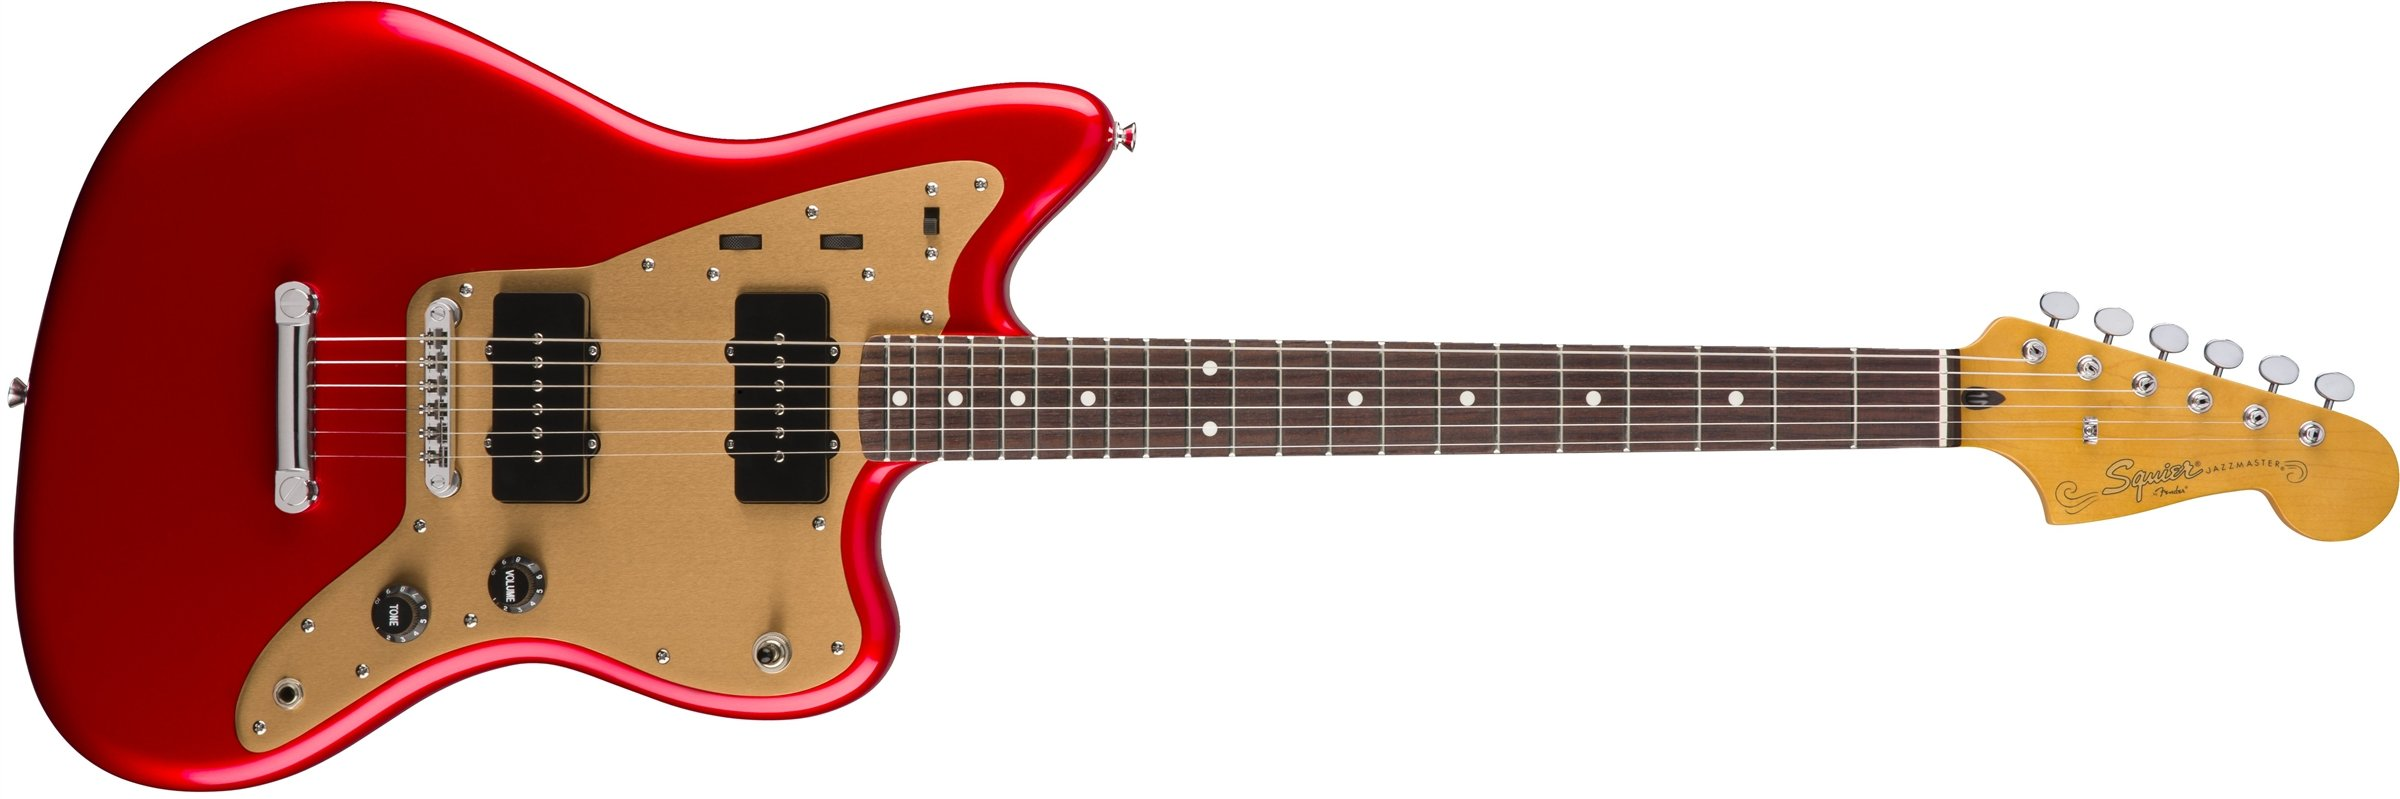 Cheap Squier by Fender Deluxe Jazzmaster Stop-Tail - Candy Apple Red Black Friday & Cyber Monday 2019